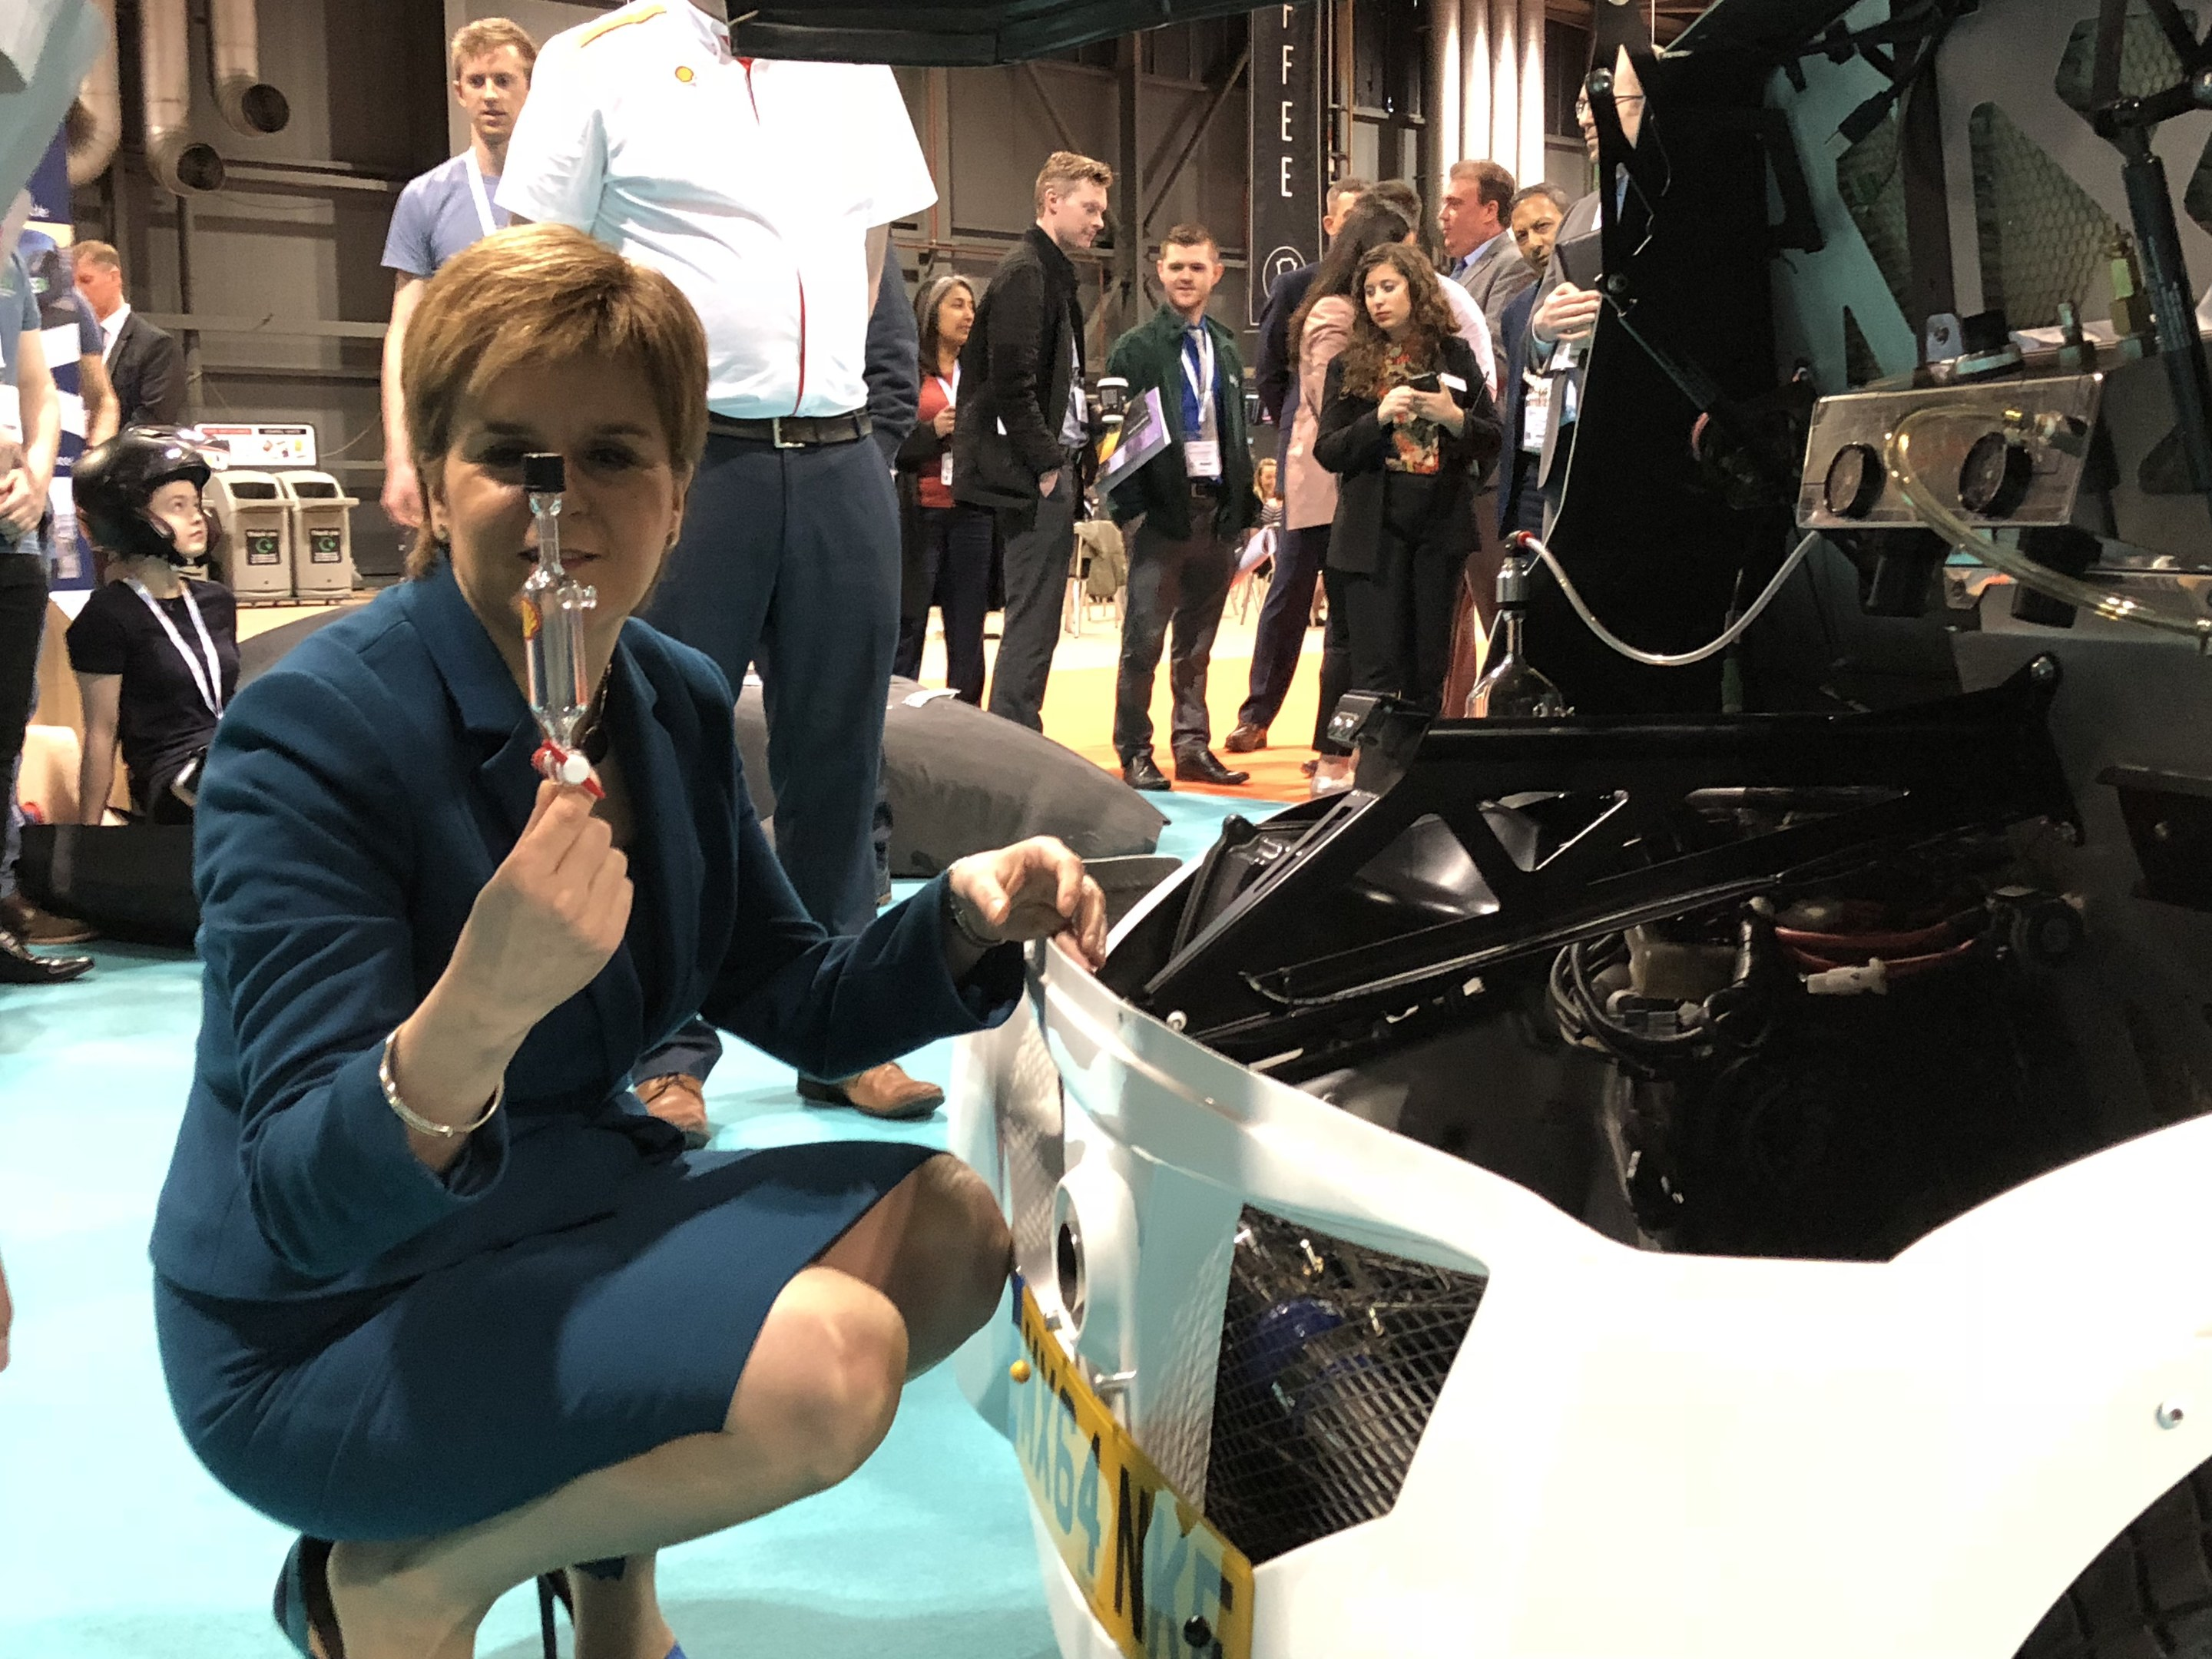 First Minister Nicola Sturgeon inspects Shell's electric vehicle.